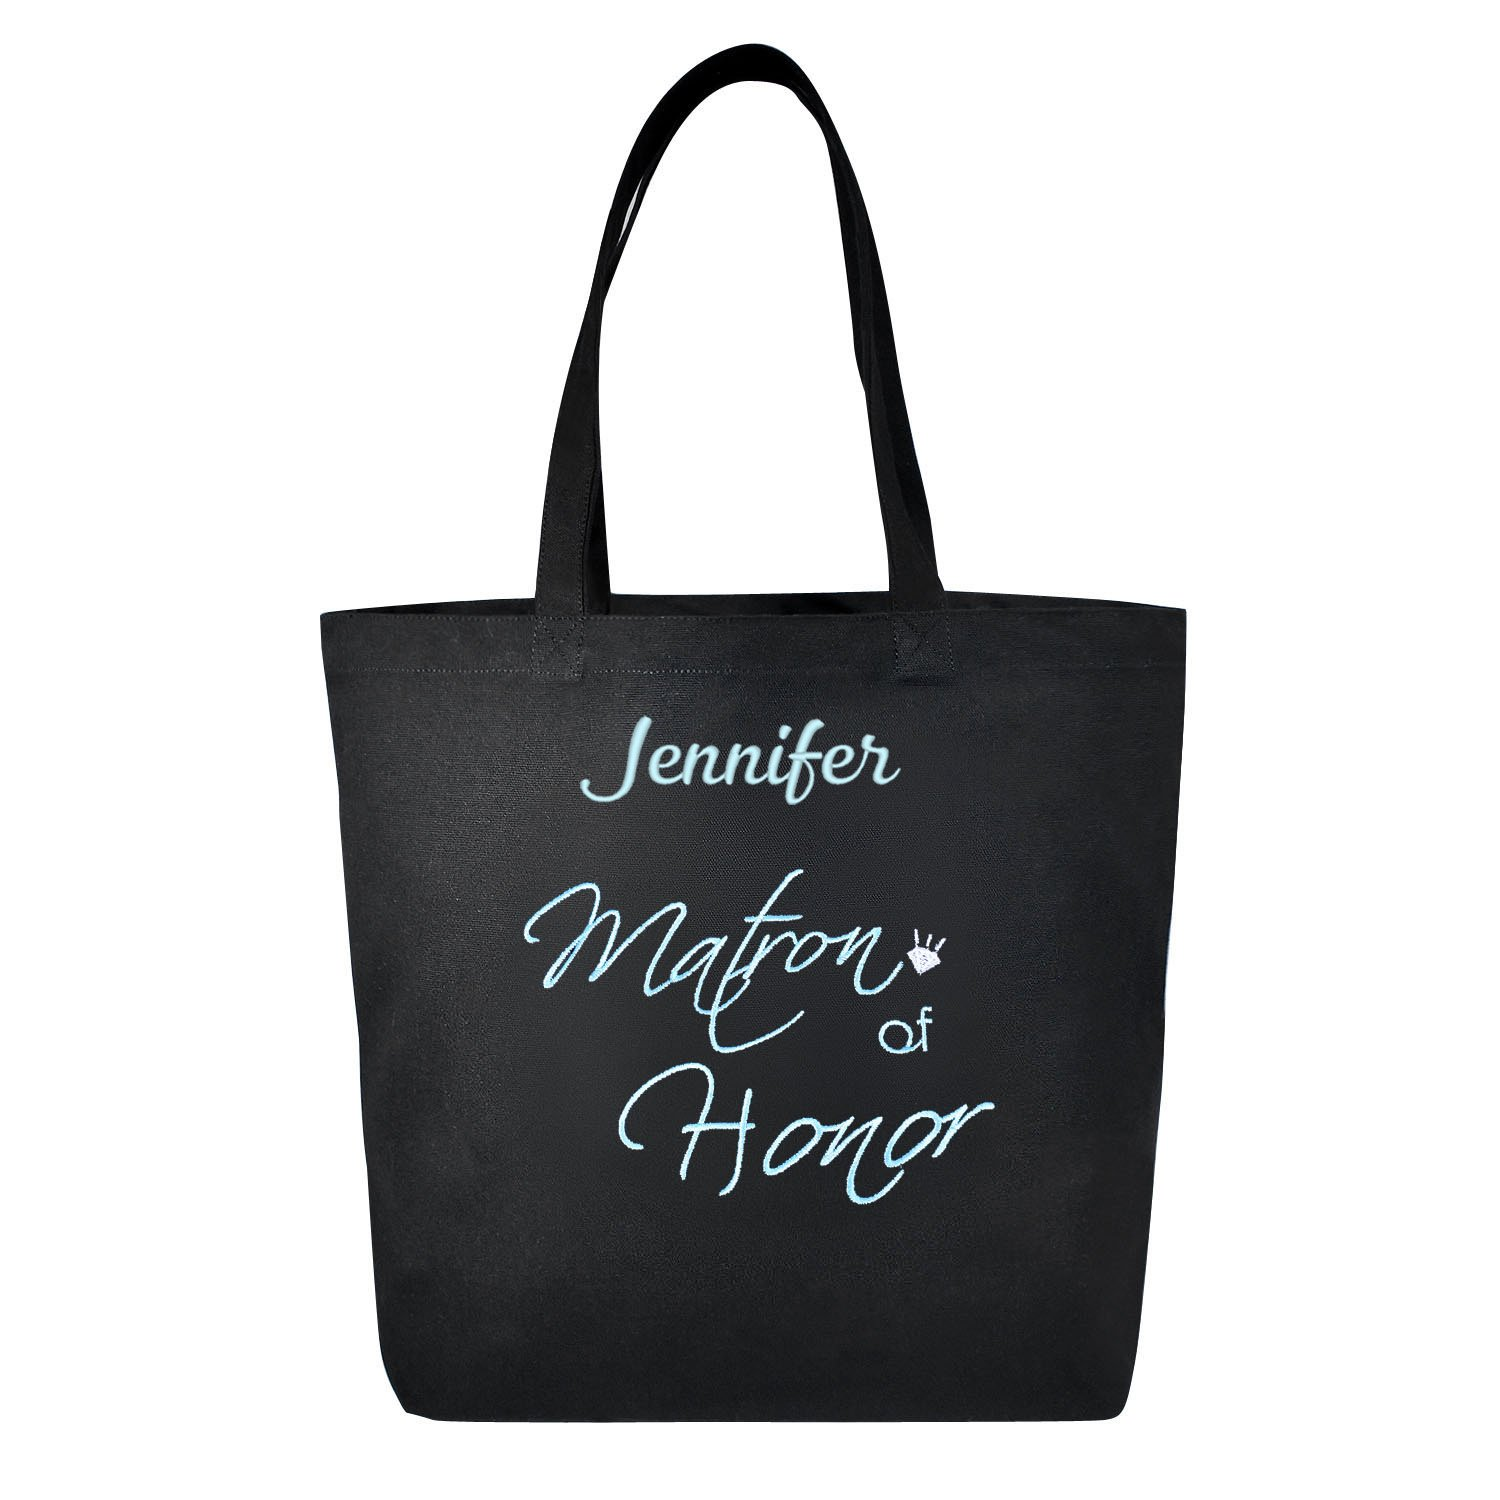 PERSONALIZED Aqua Embroidered Matron of Honor Tote Wedding Gift Black Shoulder Bag 100% Cotton